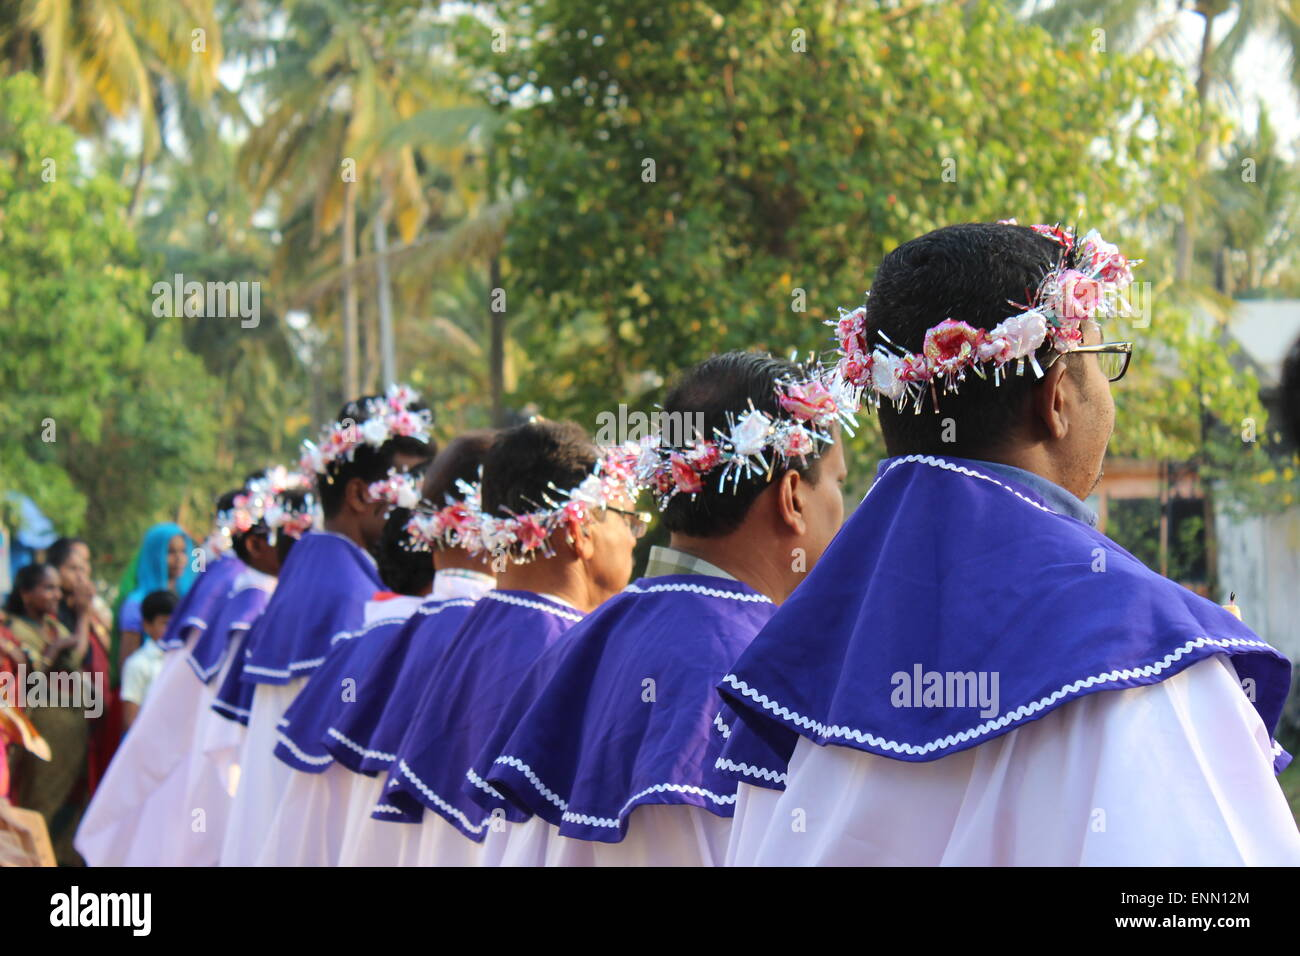 Festival at a Roman Catholic church on Vypeen Island - Stock Image